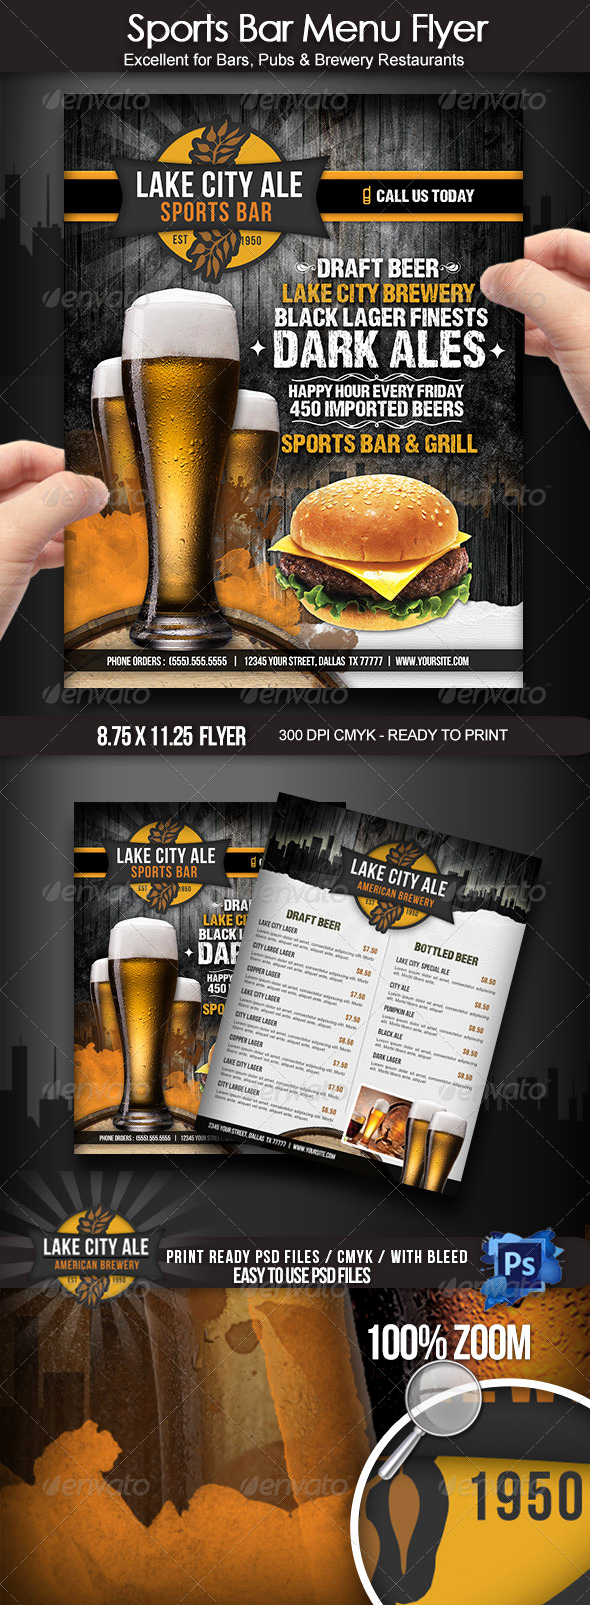 Soul Food Menu Template Fresh Sports Bar Menu Flyer by Boca2600